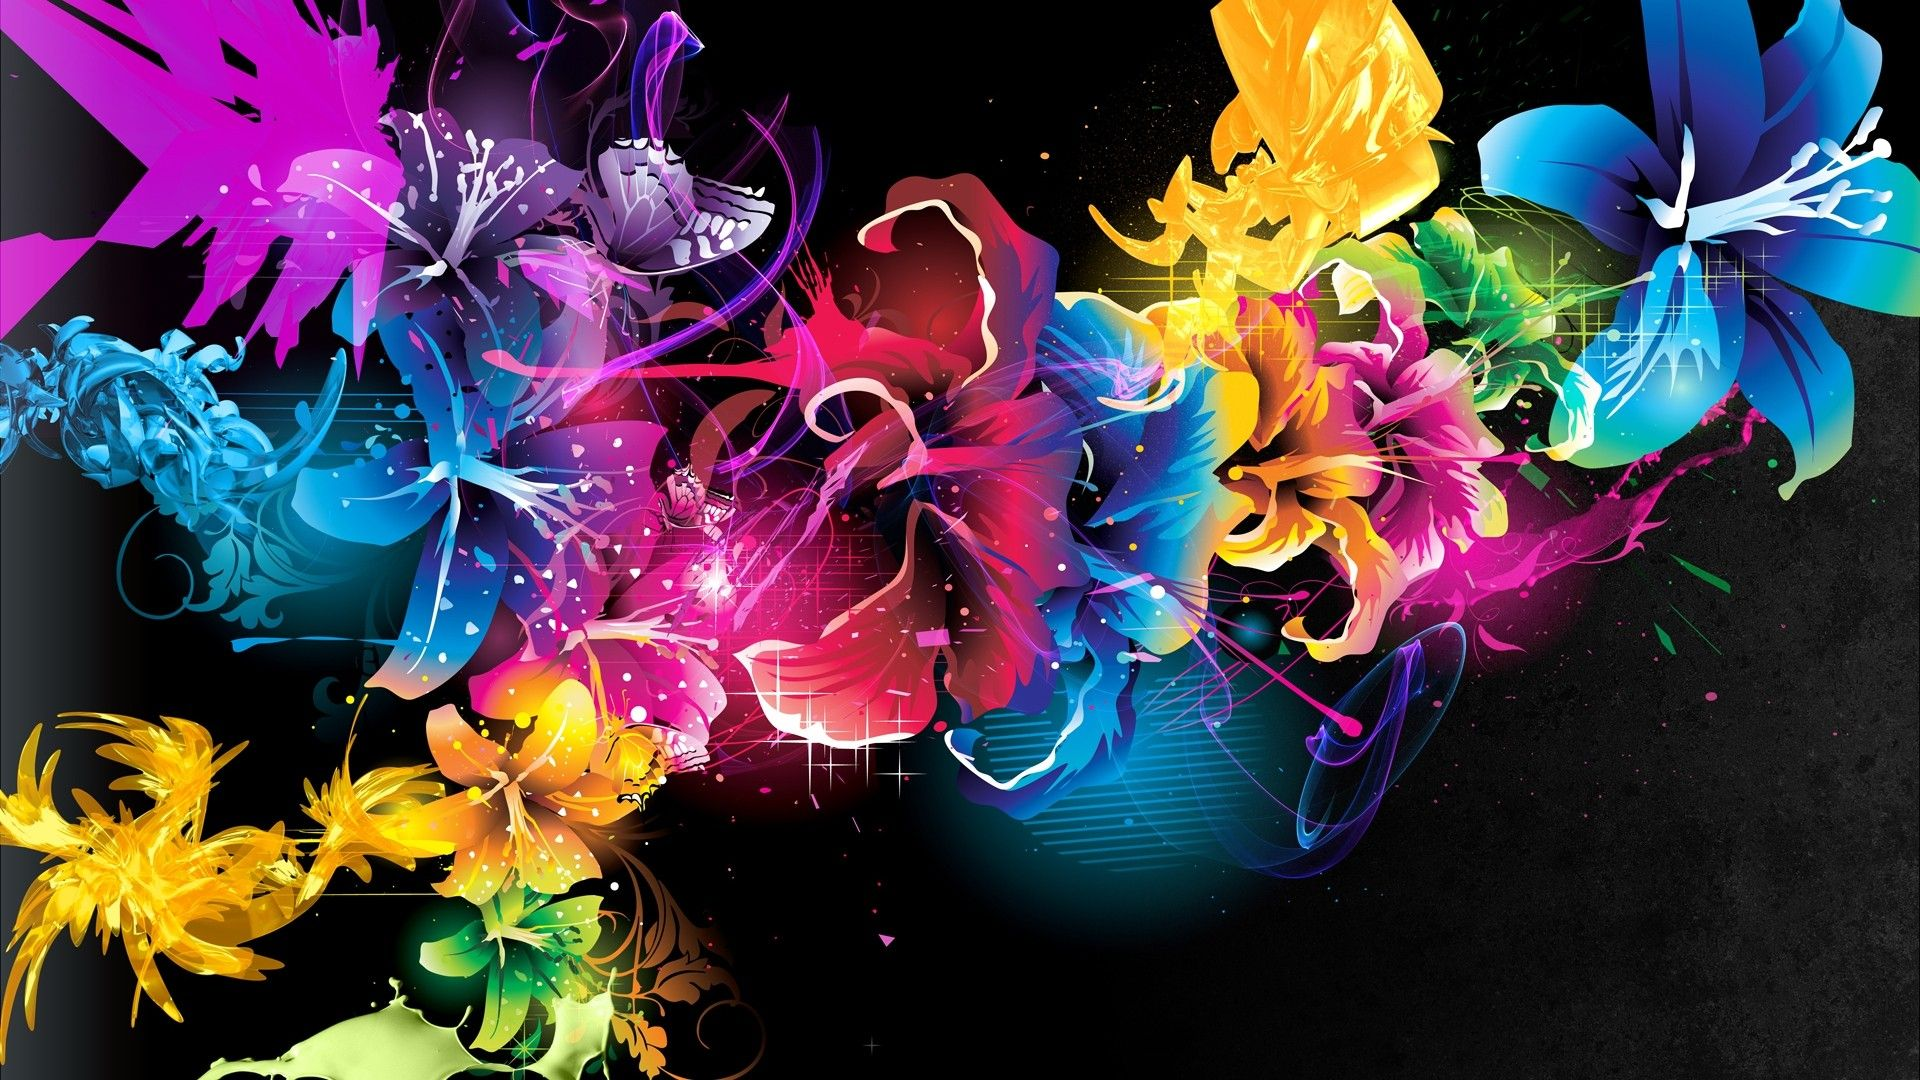 Fractal Images Free Beautiful Fractal Flowers Wallpaper